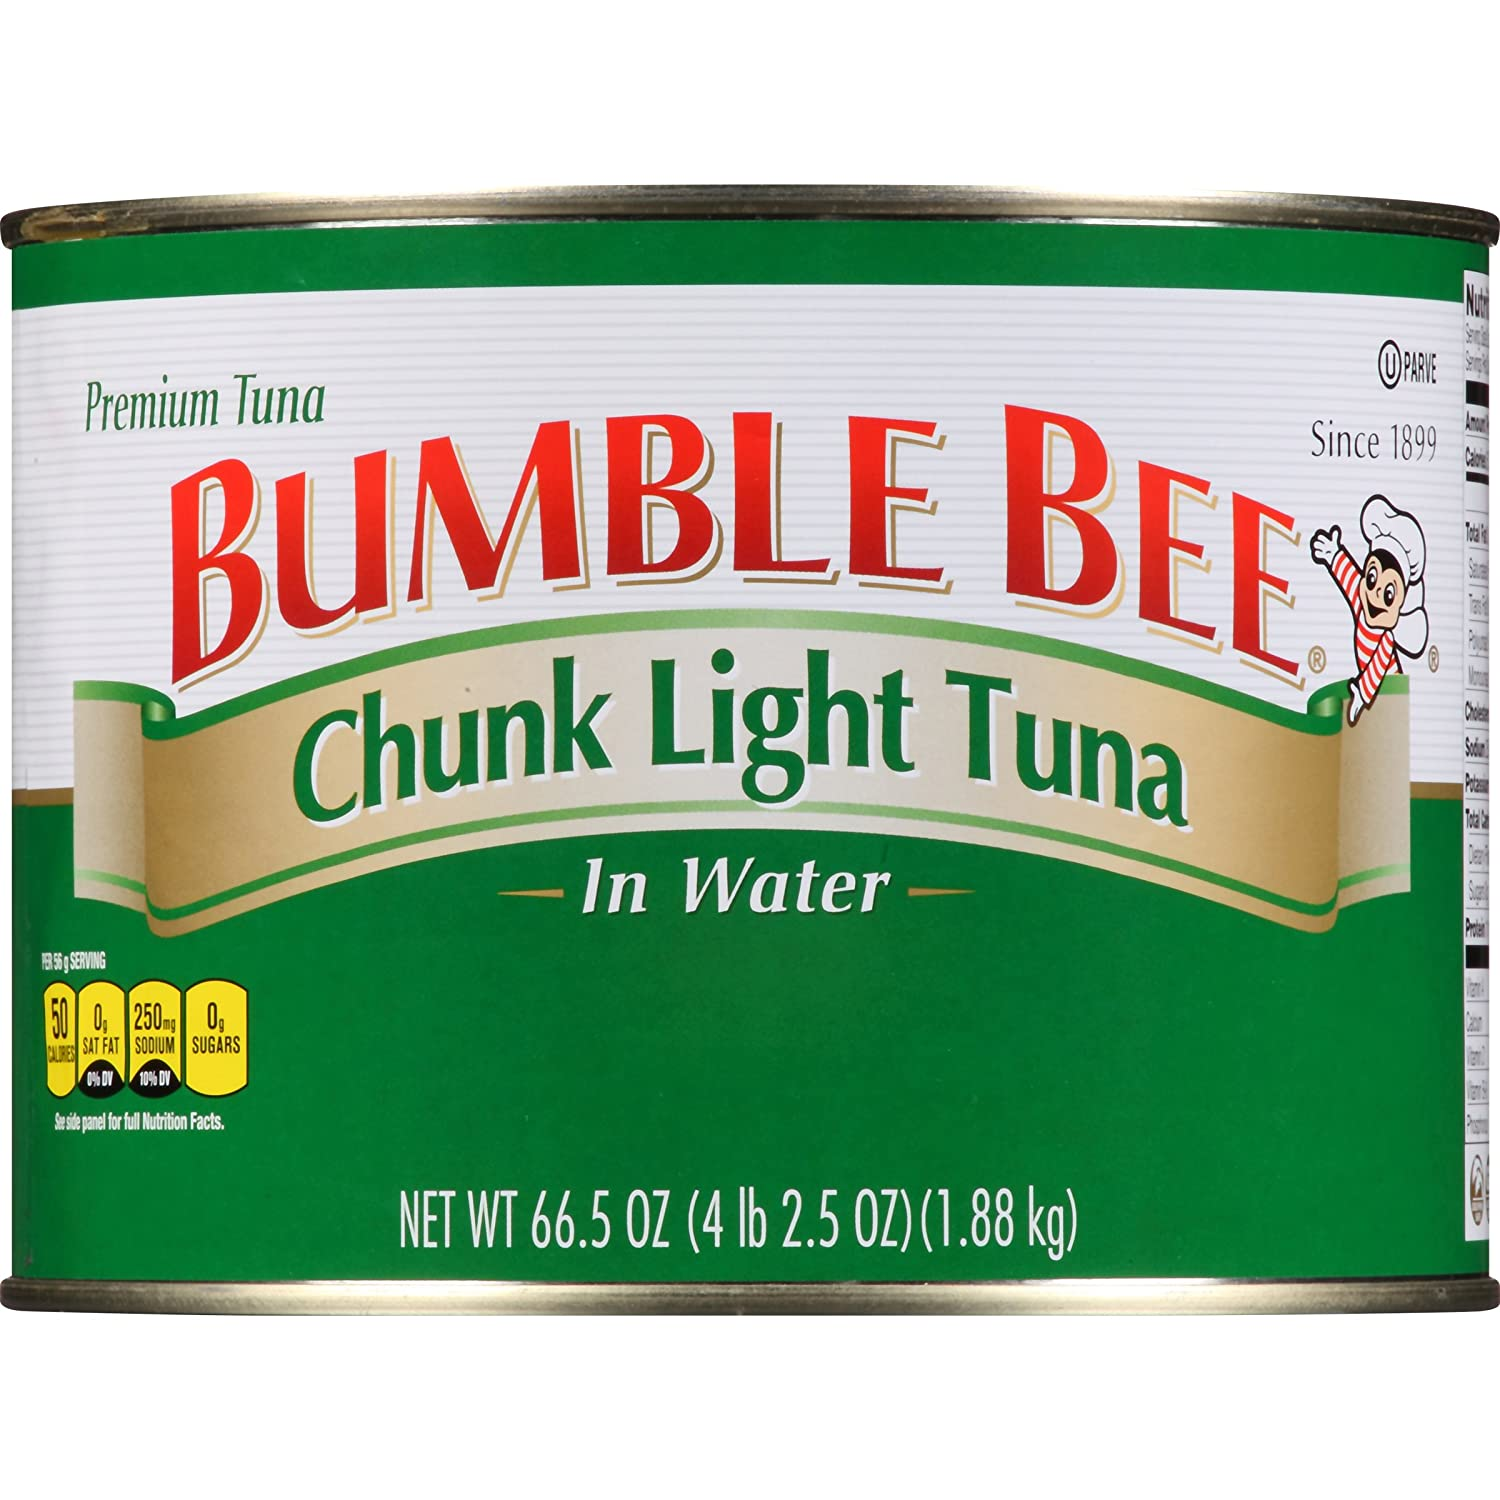 BUMBLE BEE Chunk Light Tuna In Water, Wild Caught, High Protein Food, Gluten Free, Keto, Canned Food, 66.5 Ounce Tin